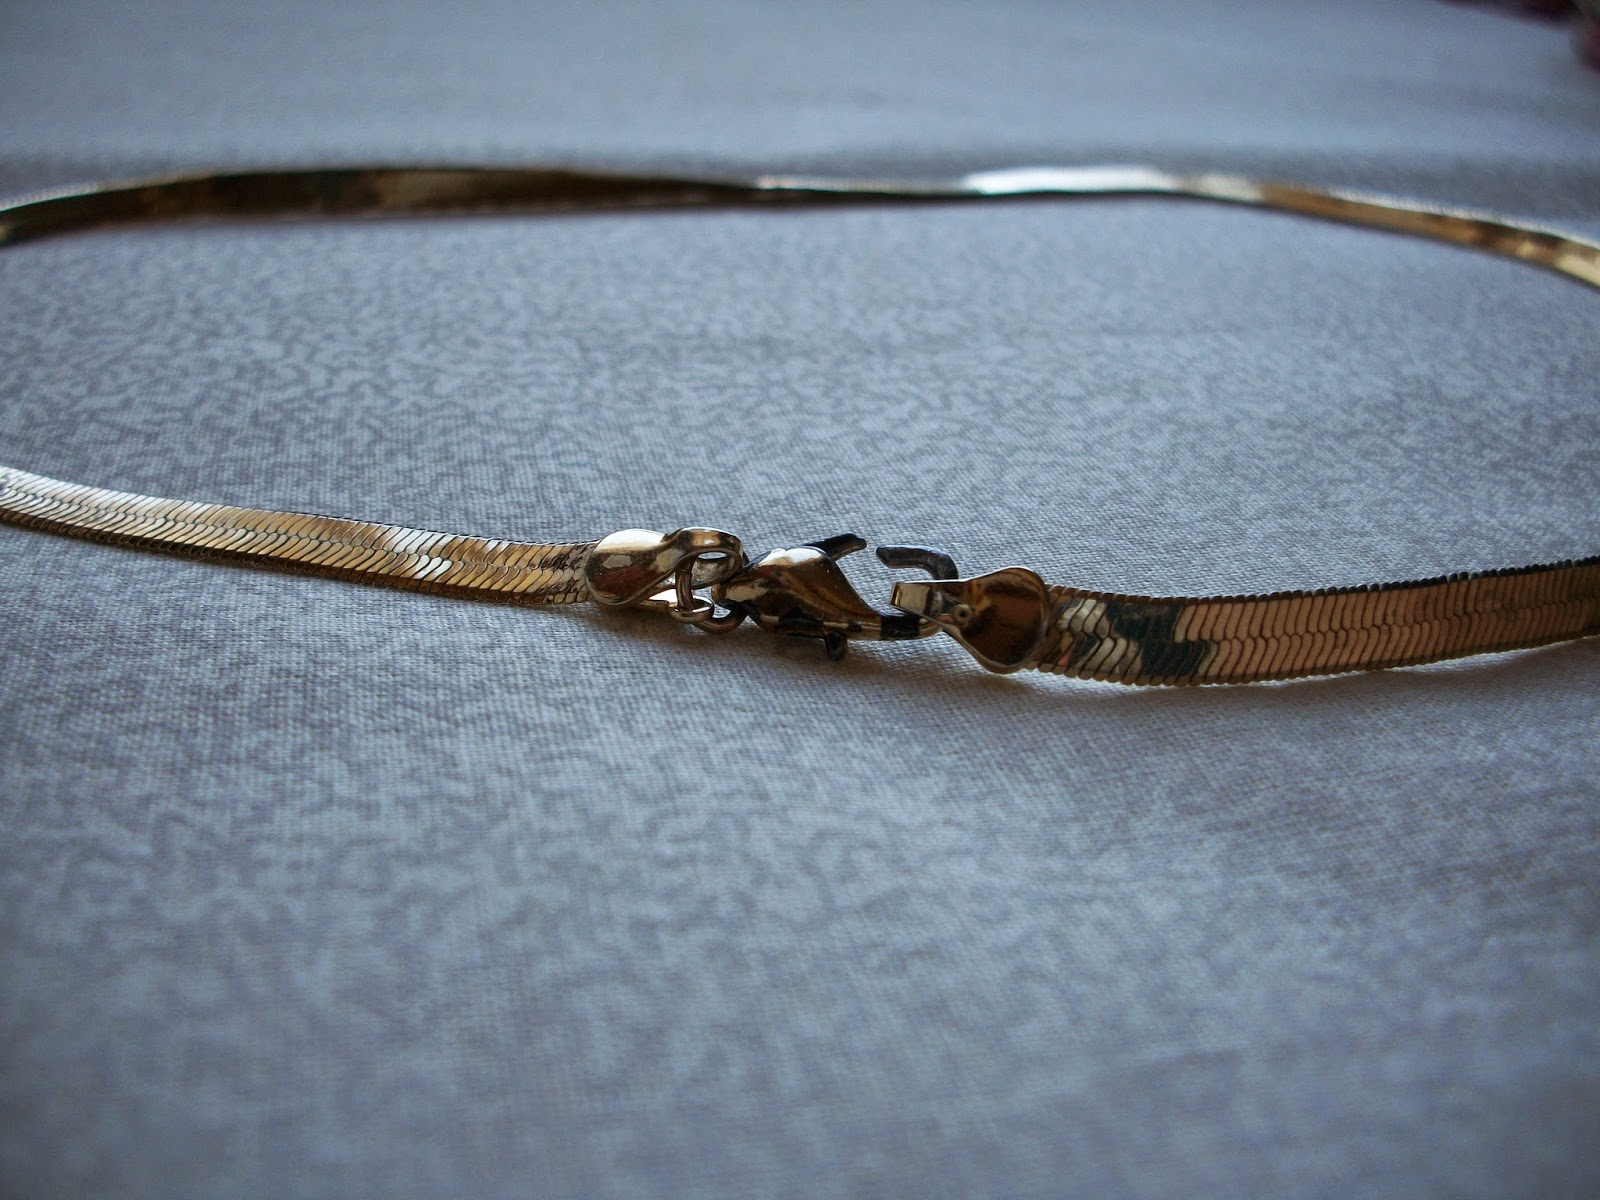 Golden Necklace with Broken Clasp